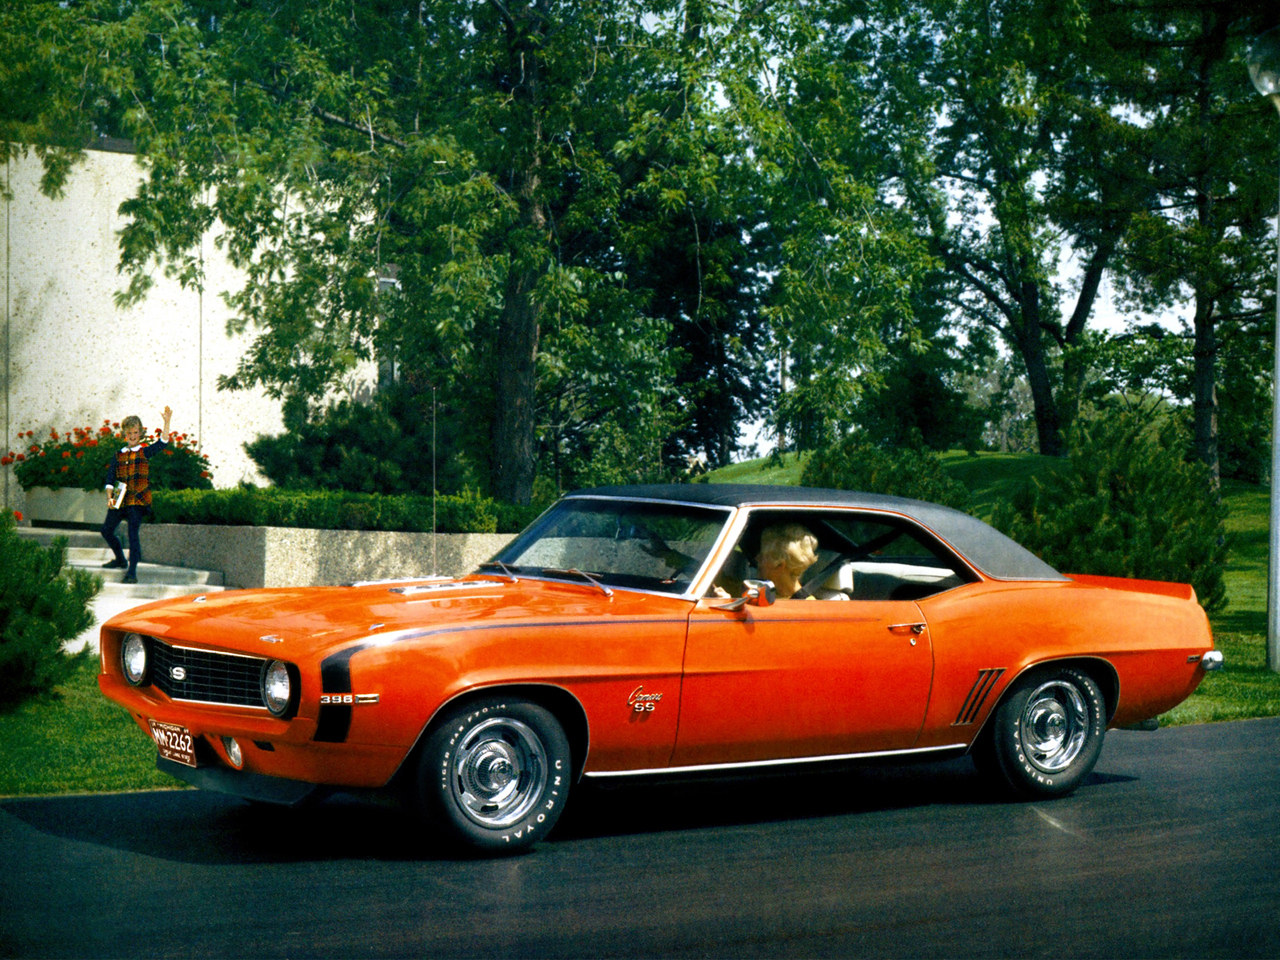 Chevrolet Wallpapers Chevrolet Camaro SS 396 1969 Wallpapers 1280x960